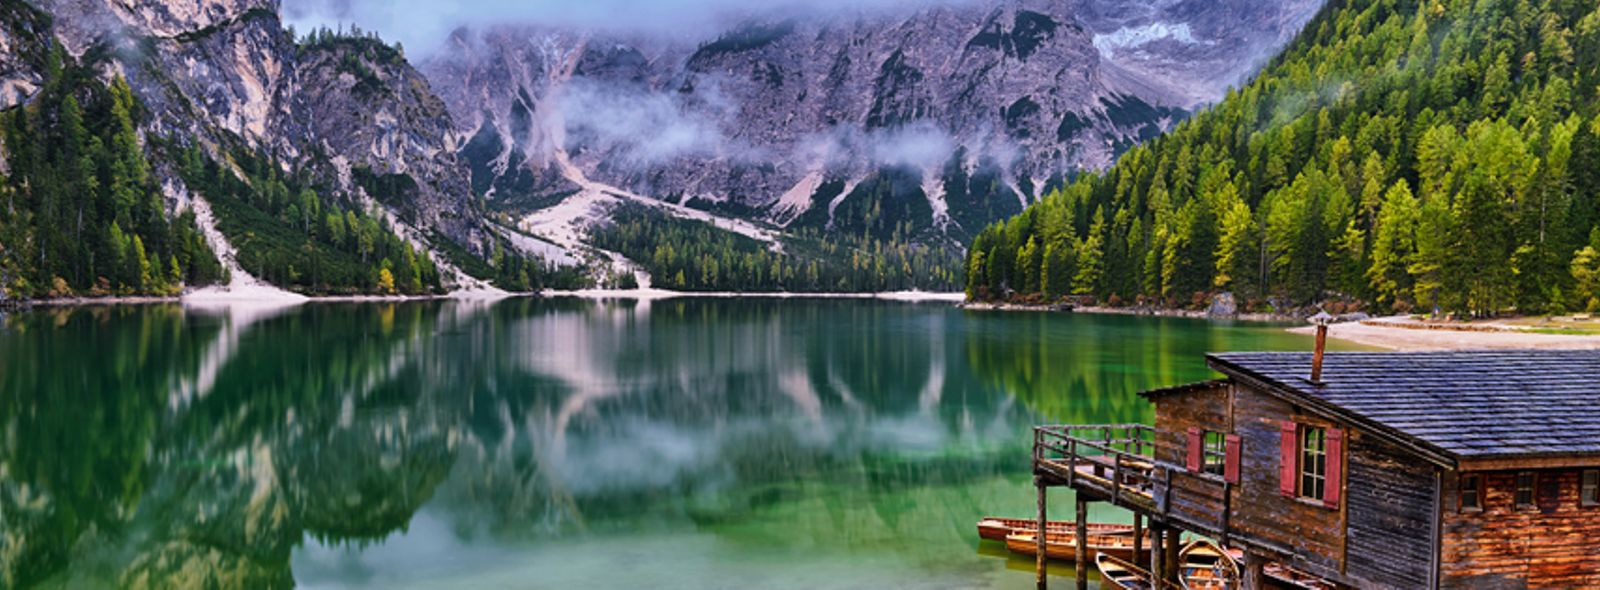 Lago di braies dove si trova trovami for Arredo ingross 3 dove si trova